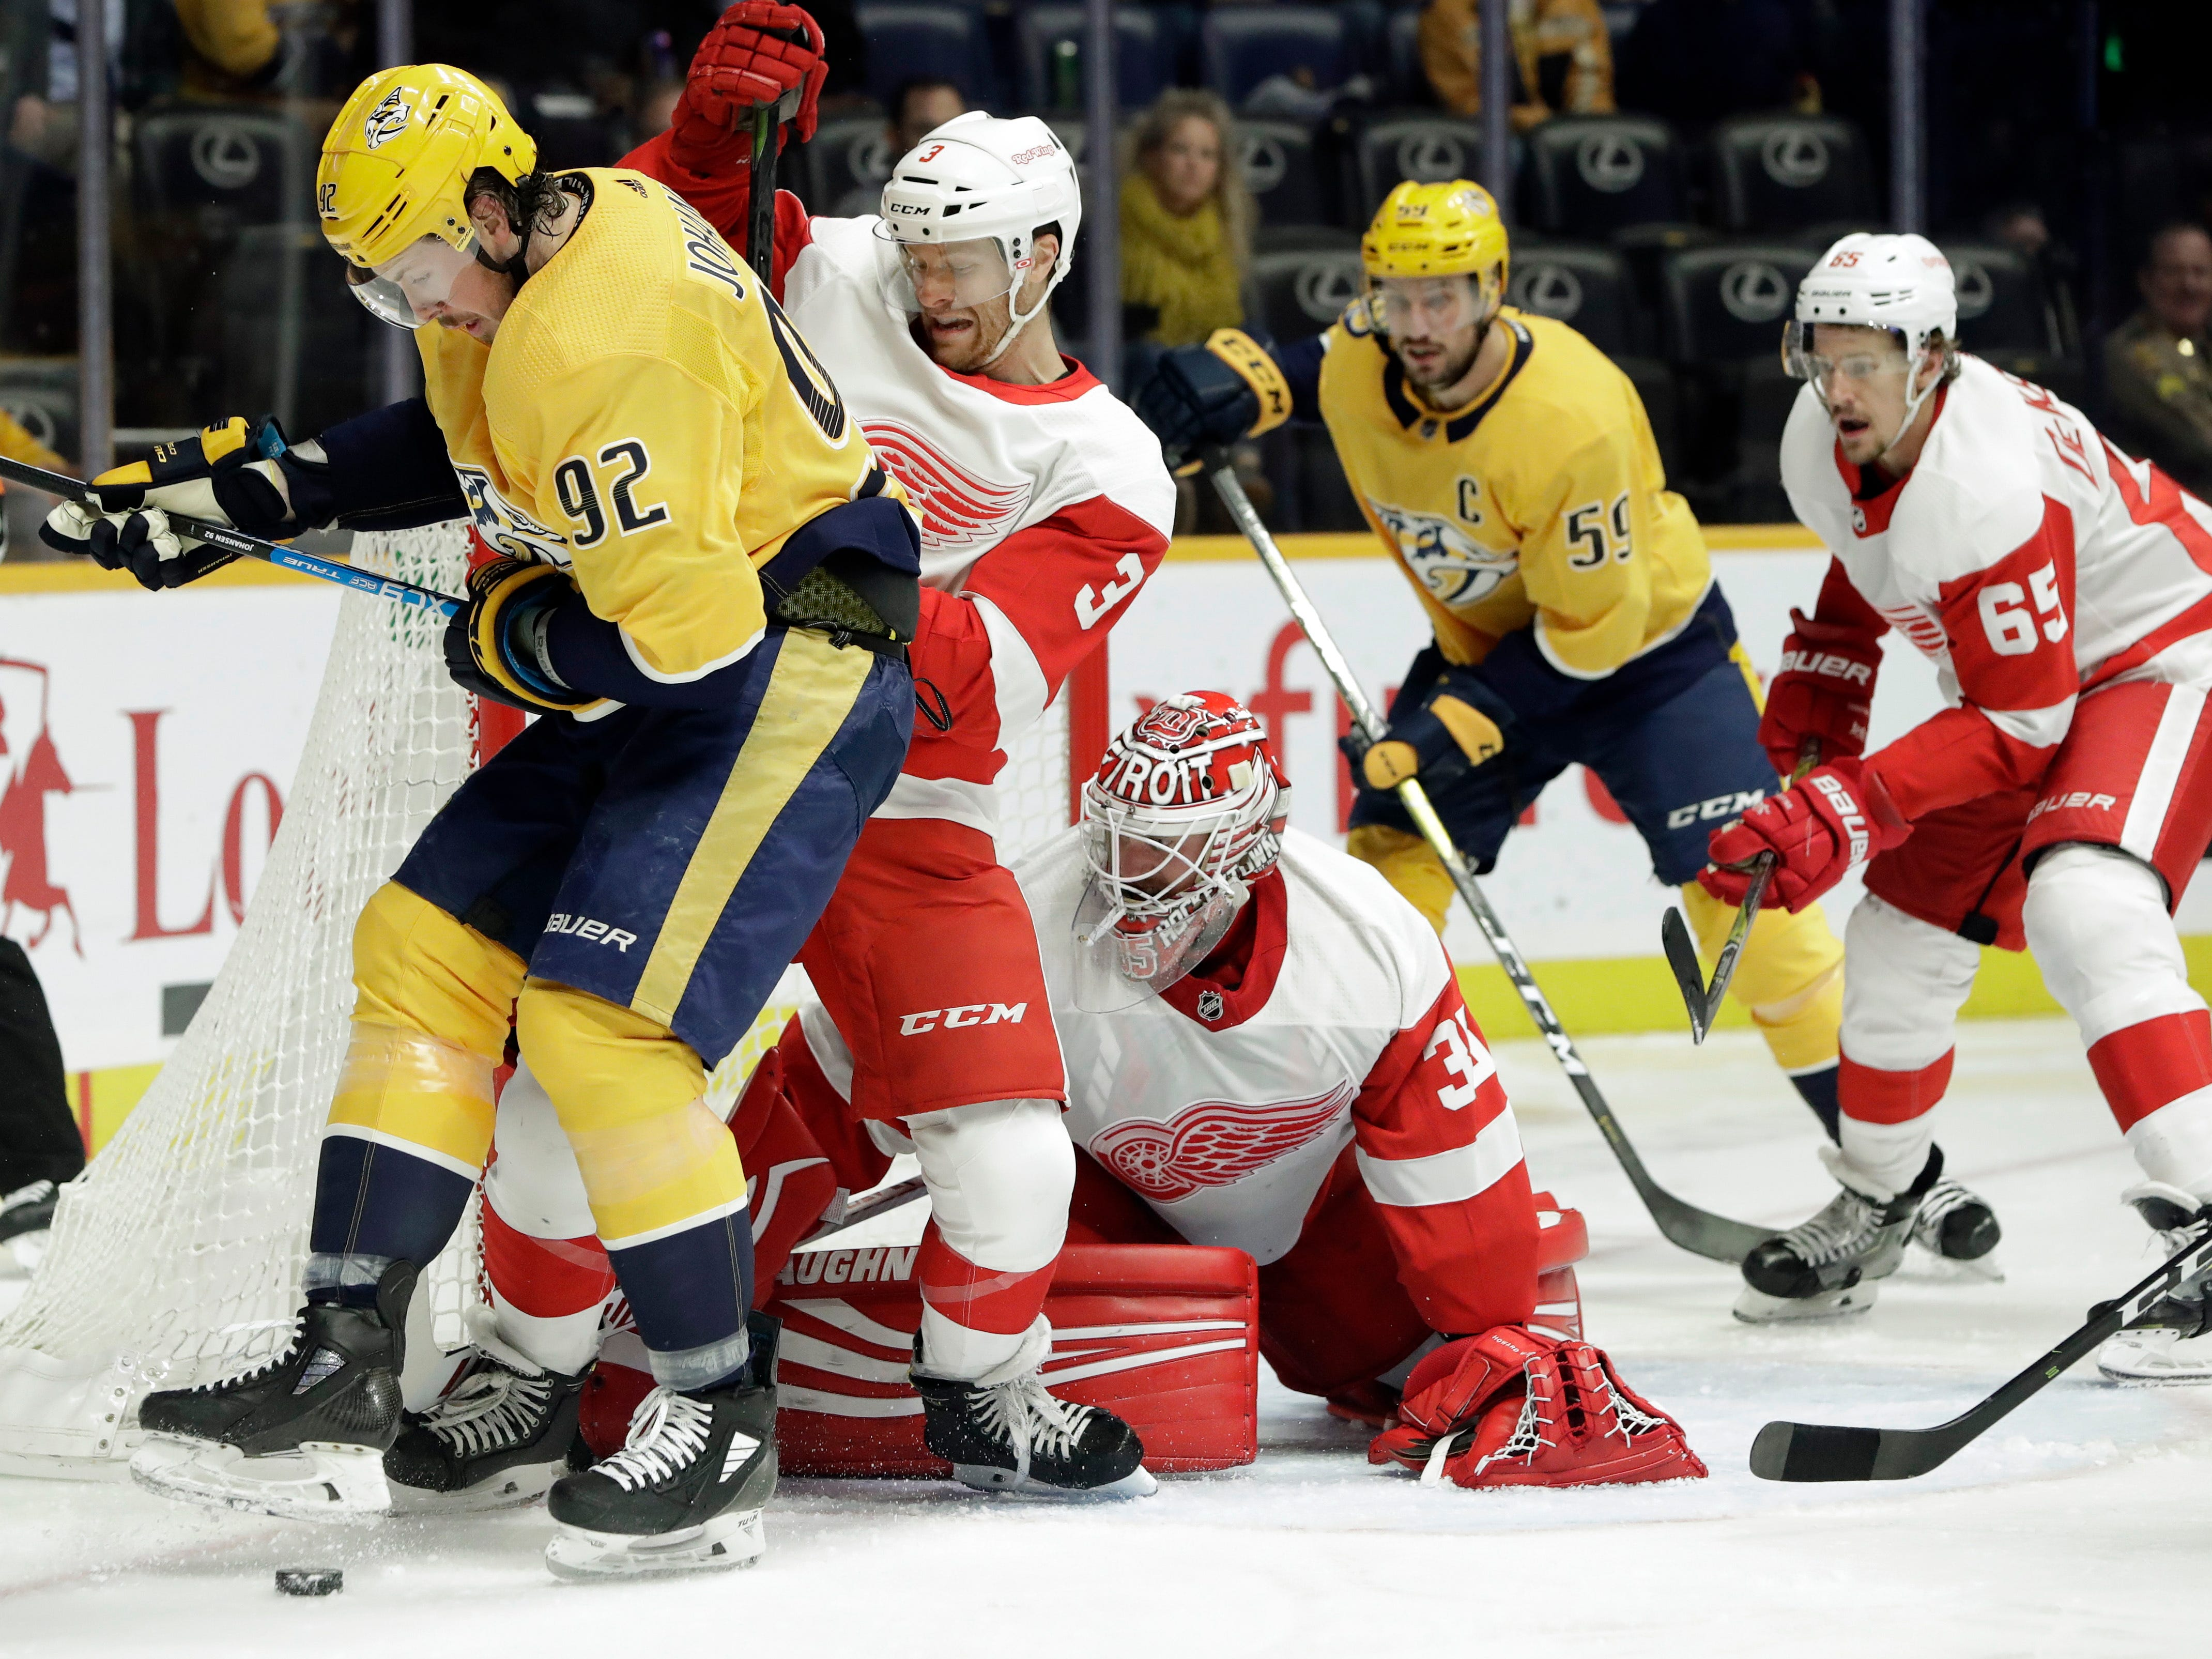 Nashville Predators center Ryan Johansen (92) and Detroit Red Wings defenseman Nick Jensen (3) compete for the puck during the second period.